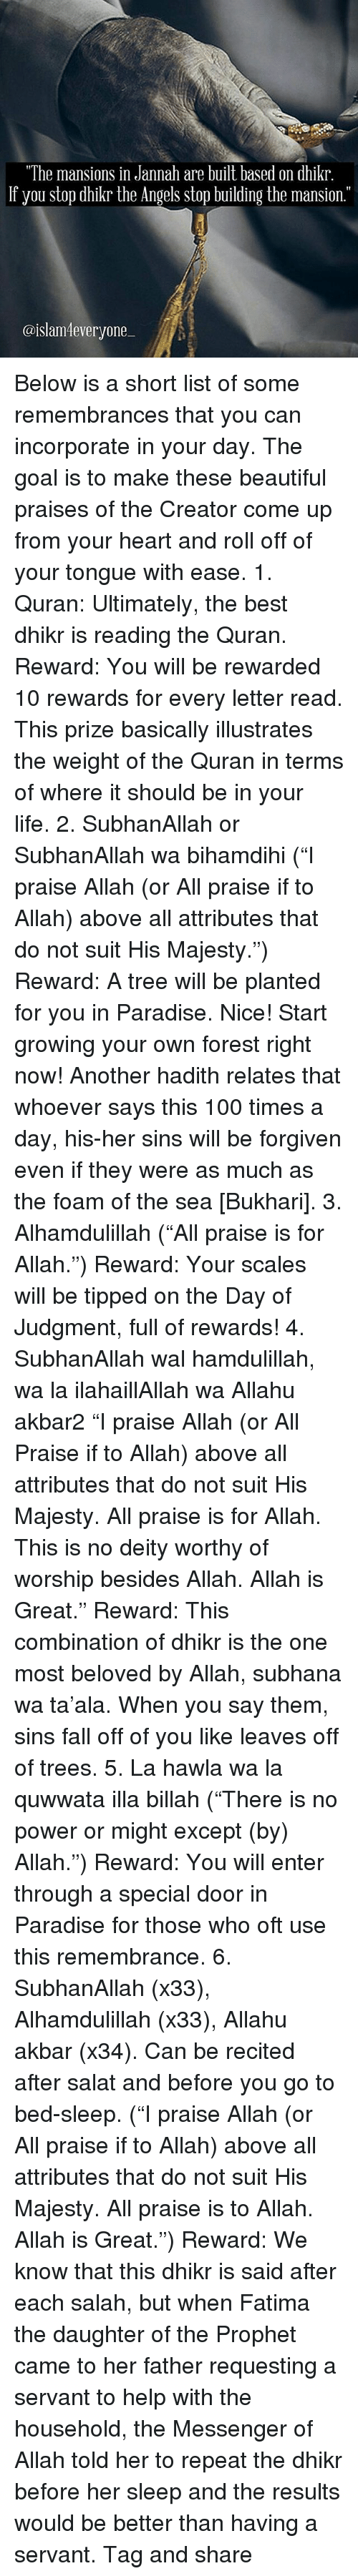 """The Prophet: """"The mansions in Jannah are built based on dhikr  If you stop dhikr the Angels stop building the mansion.""""  @islam everyone Below is a short list of some remembrances that you can incorporate in your day. The goal is to make these beautiful praises of the Creator come up from your heart and roll off of your tongue with ease. 1. Quran: Ultimately, the best dhikr is reading the Quran. Reward: You will be rewarded 10 rewards for every letter read. This prize basically illustrates the weight of the Quran in terms of where it should be in your life. 2. SubhanAllah or SubhanAllah wa bihamdihi (""""I praise Allah (or All praise if to Allah) above all attributes that do not suit His Majesty."""") Reward: A tree will be planted for you in Paradise. Nice! Start growing your own forest right now! Another hadith relates that whoever says this 100 times a day, his-her sins will be forgiven even if they were as much as the foam of the sea [Bukhari]. 3. Alhamdulillah (""""All praise is for Allah."""") Reward: Your scales will be tipped on the Day of Judgment, full of rewards! 4. SubhanAllah wal hamdulillah, wa la ilahaillAllah wa Allahu akbar2 """"I praise Allah (or All Praise if to Allah) above all attributes that do not suit His Majesty. All praise is for Allah. This is no deity worthy of worship besides Allah. Allah is Great."""" Reward: This combination of dhikr is the one most beloved by Allah, subhana wa ta'ala. When you say them, sins fall off of you like leaves off of trees. 5. La hawla wa la quwwata illa billah (""""There is no power or might except (by) Allah."""") Reward: You will enter through a special door in Paradise for those who oft use this remembrance. 6. SubhanAllah (x33), Alhamdulillah (x33), Allahu akbar (x34). Can be recited after salat and before you go to bed-sleep. (""""I praise Allah (or All praise if to Allah) above all attributes that do not suit His Majesty. All praise is to Allah. Allah is Great."""") Reward: We know that this dhikr is said after each salah, but when"""